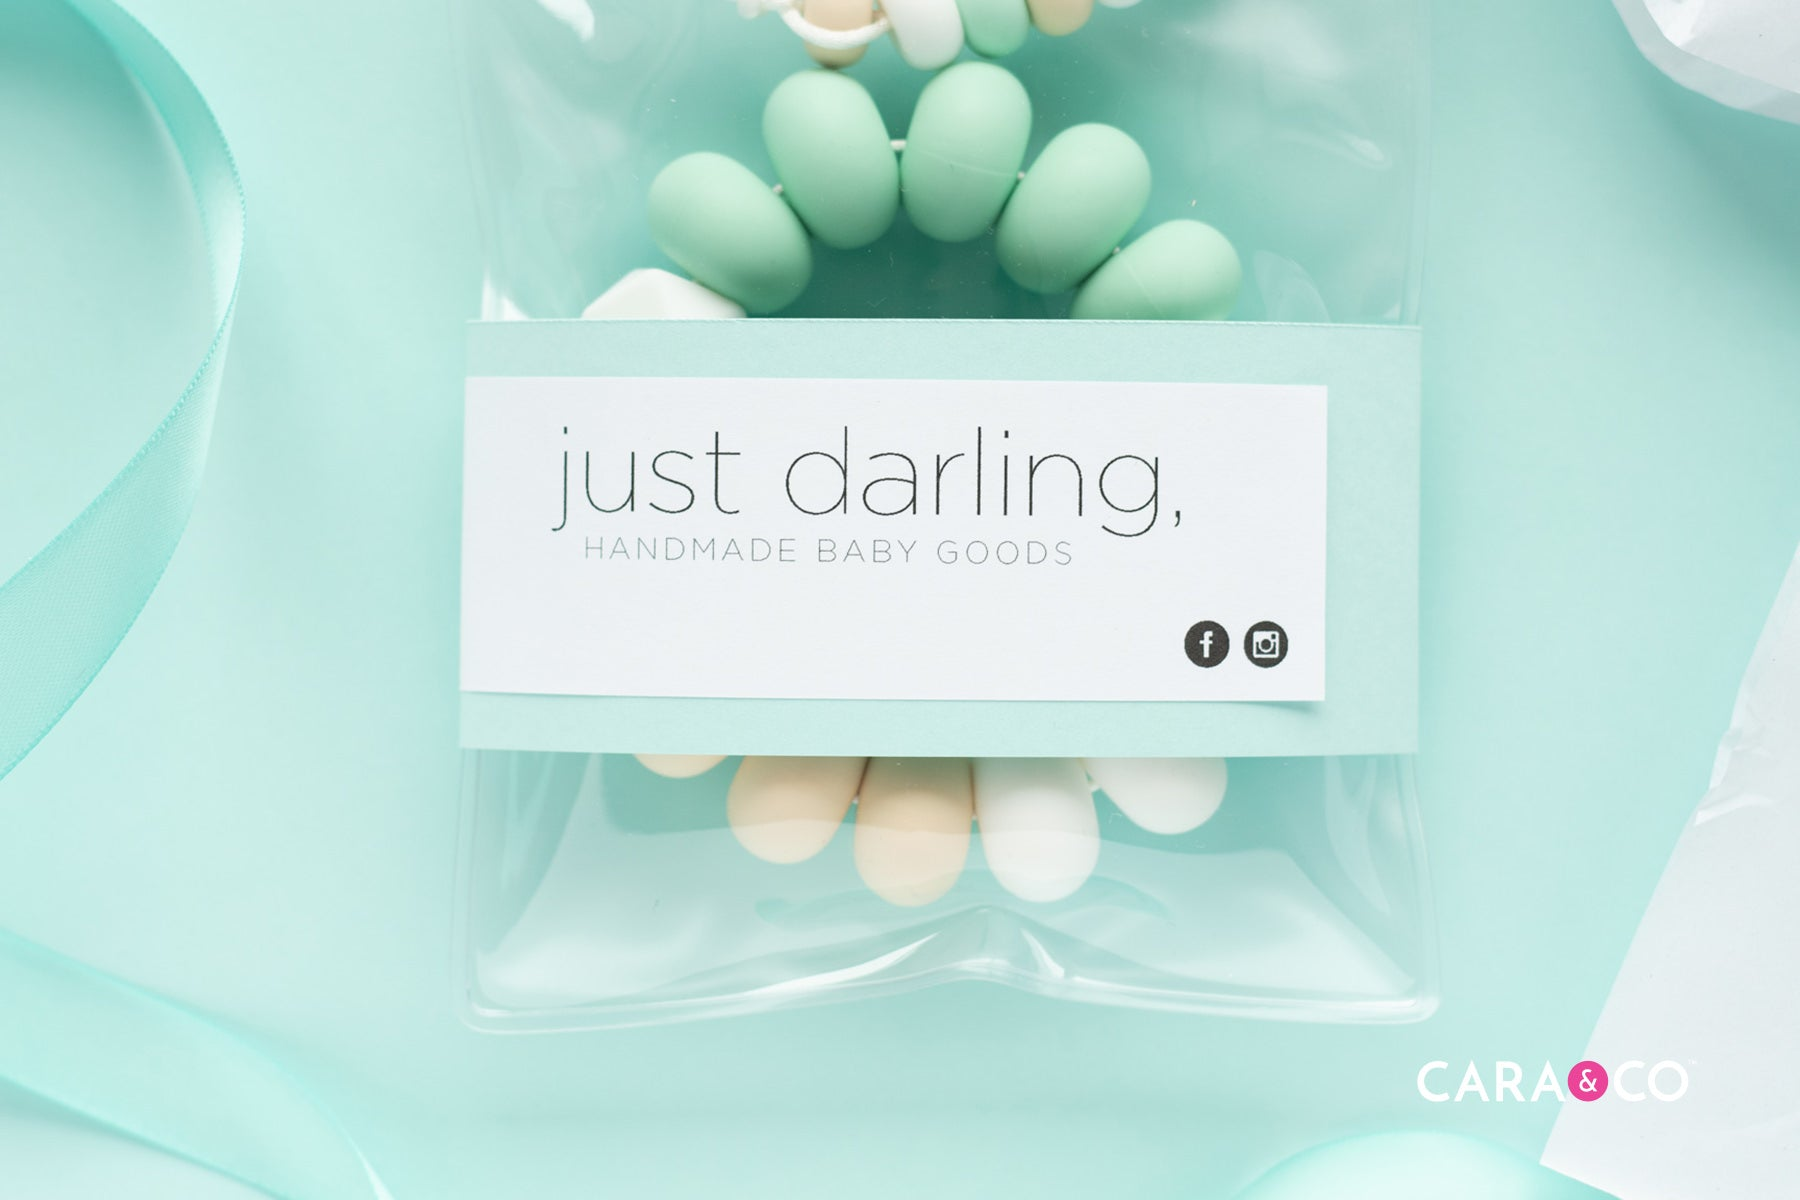 Packaging Hacks for your Handmade Small Business - Cara & Co